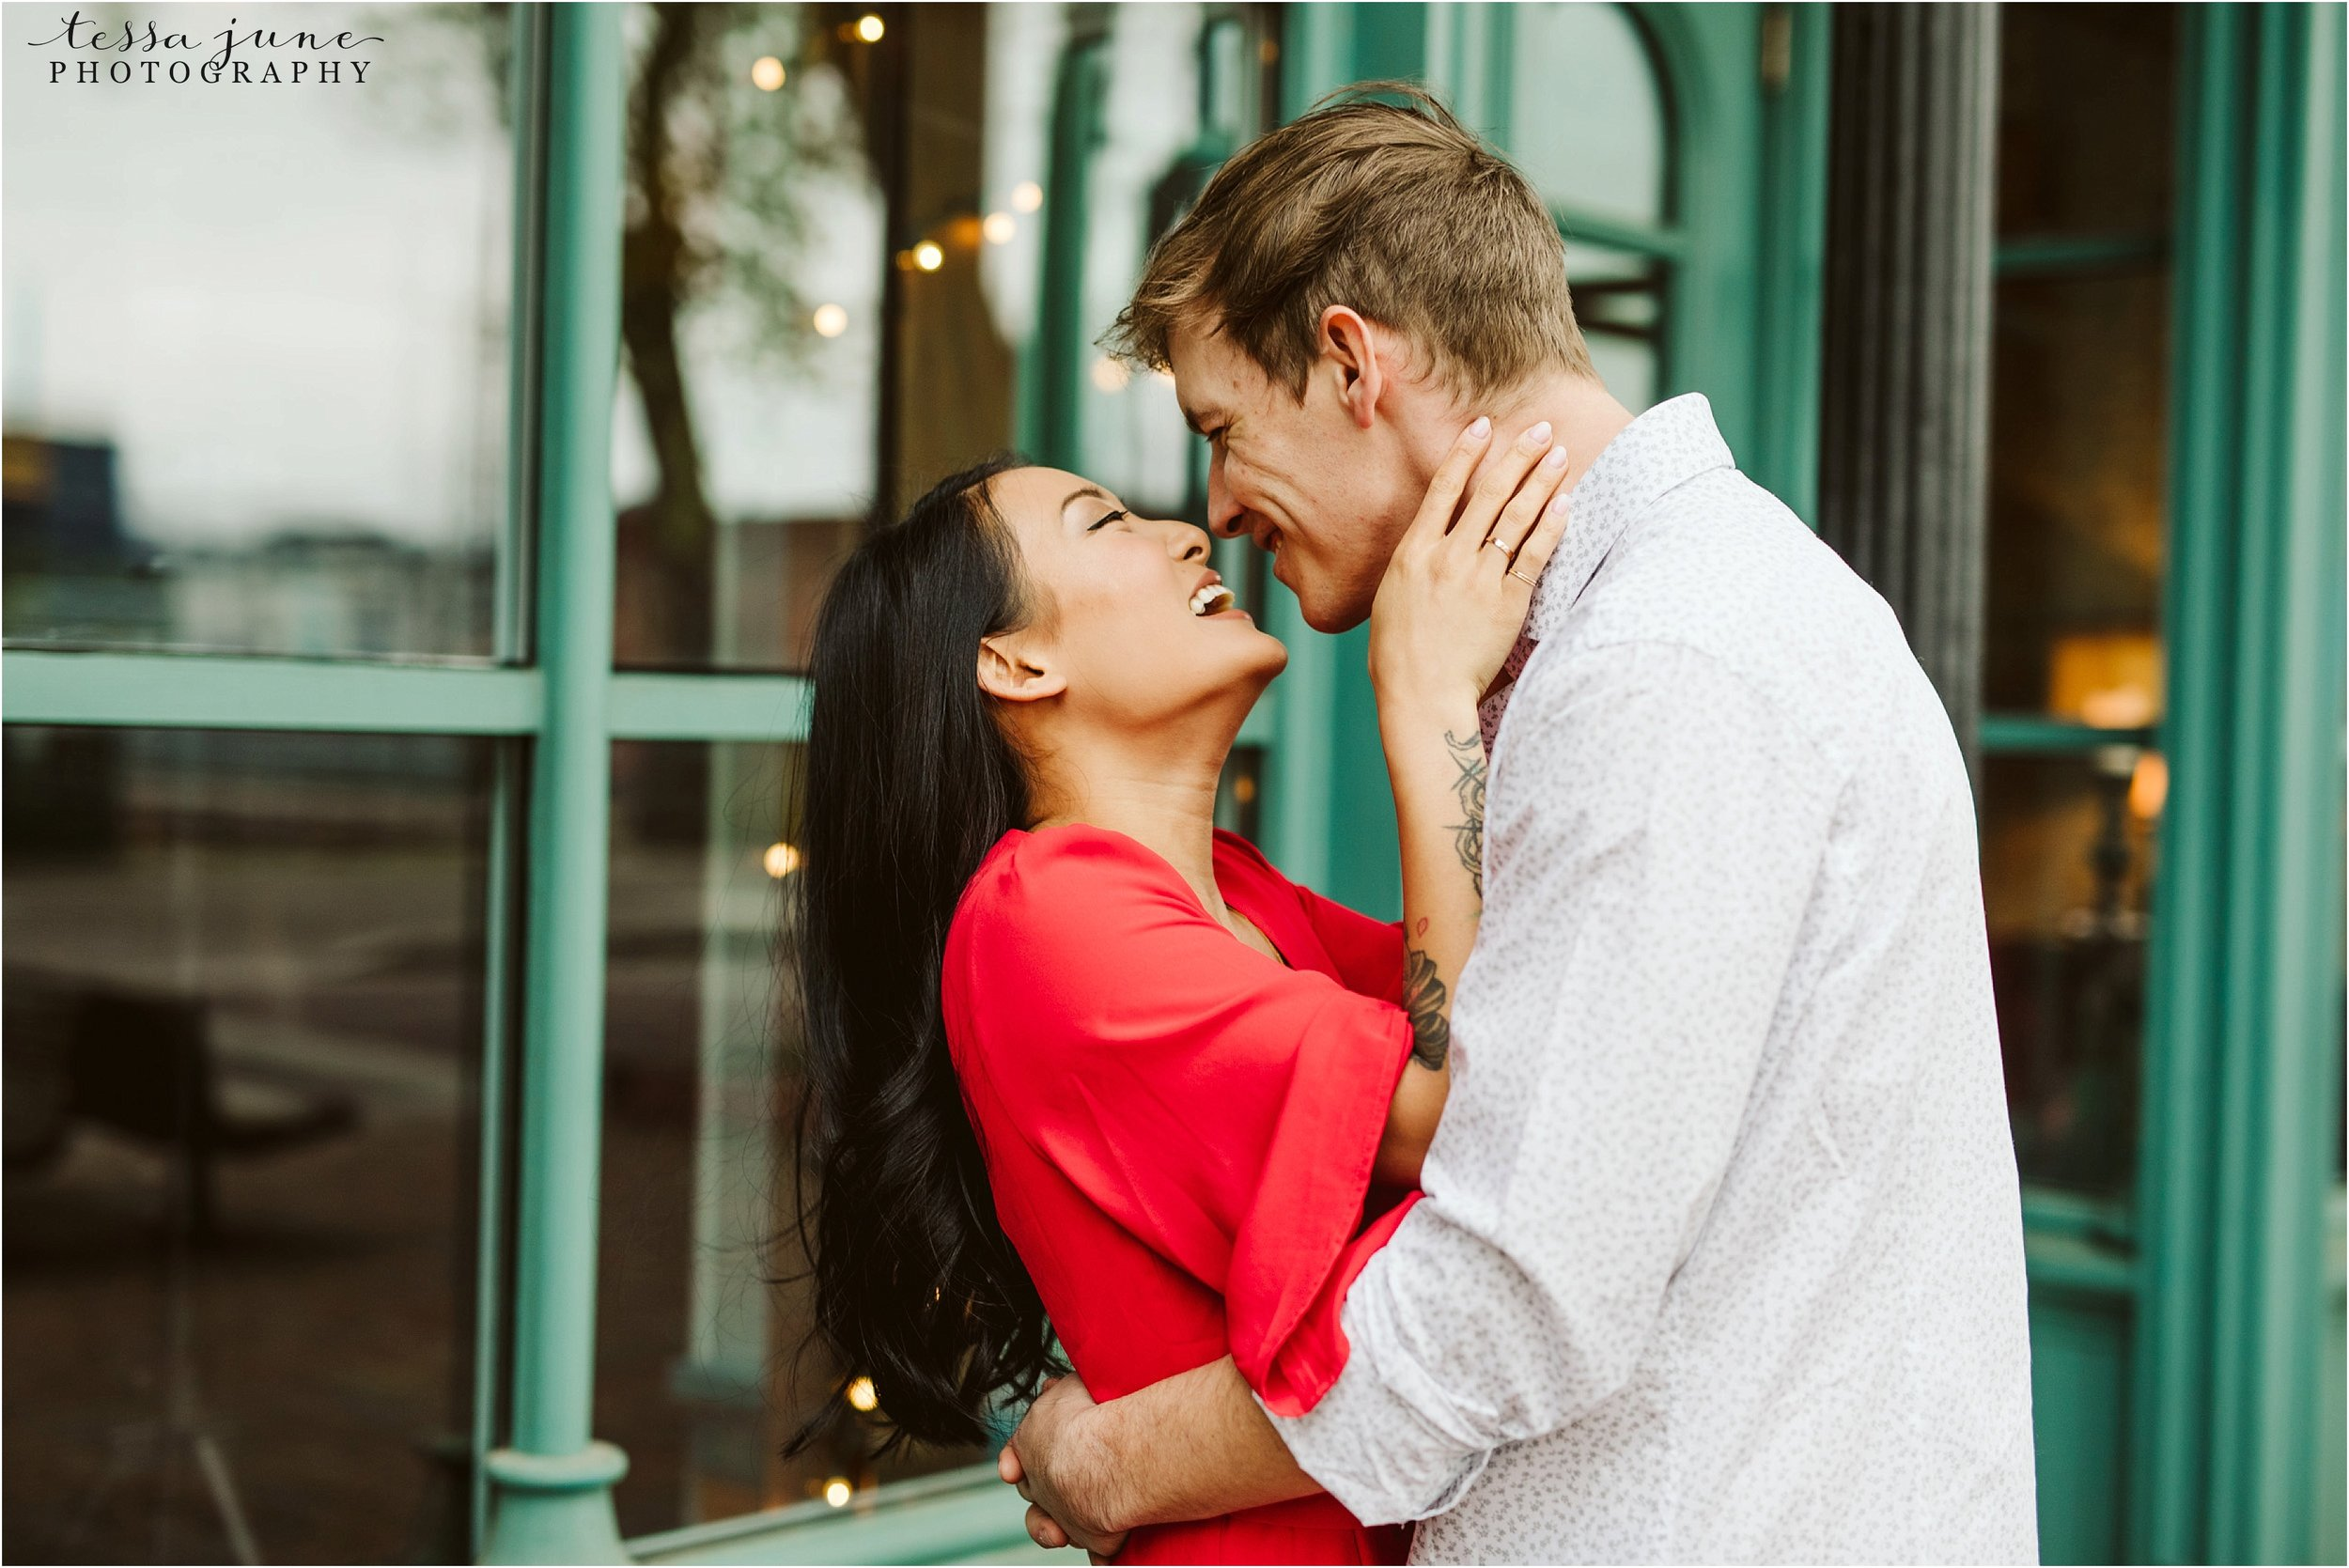 st-anthony-main-minneapolis-engagement-session-red-dress-16.jpg